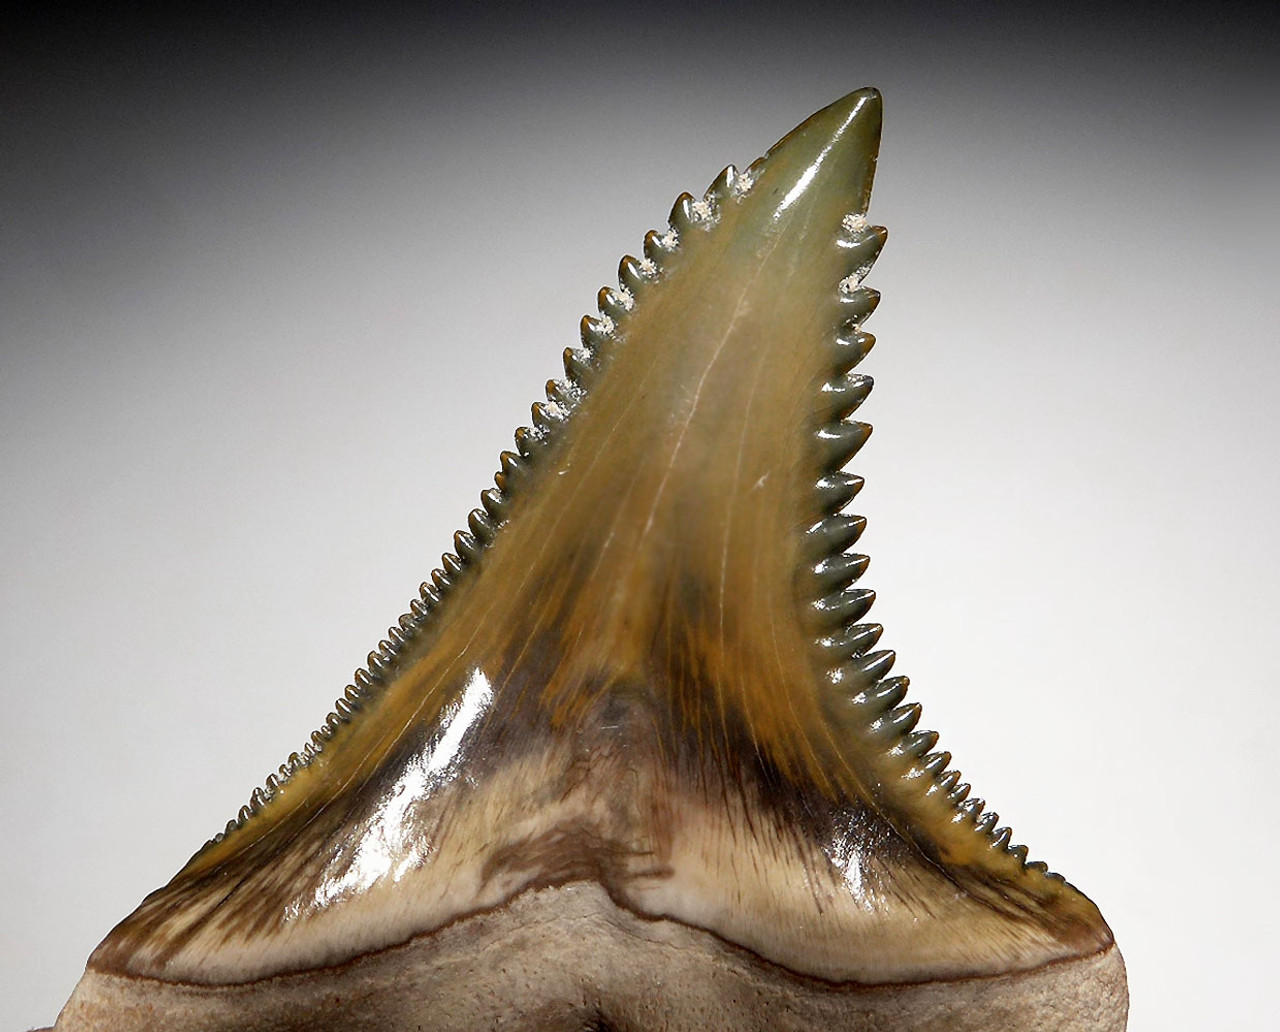 FINEST BONE VALLEY OLIVE GREEN LARGE FOSSIL HEMIPRISTIS SNAGGLETOOTH SHARK TOOTH  *SHX082